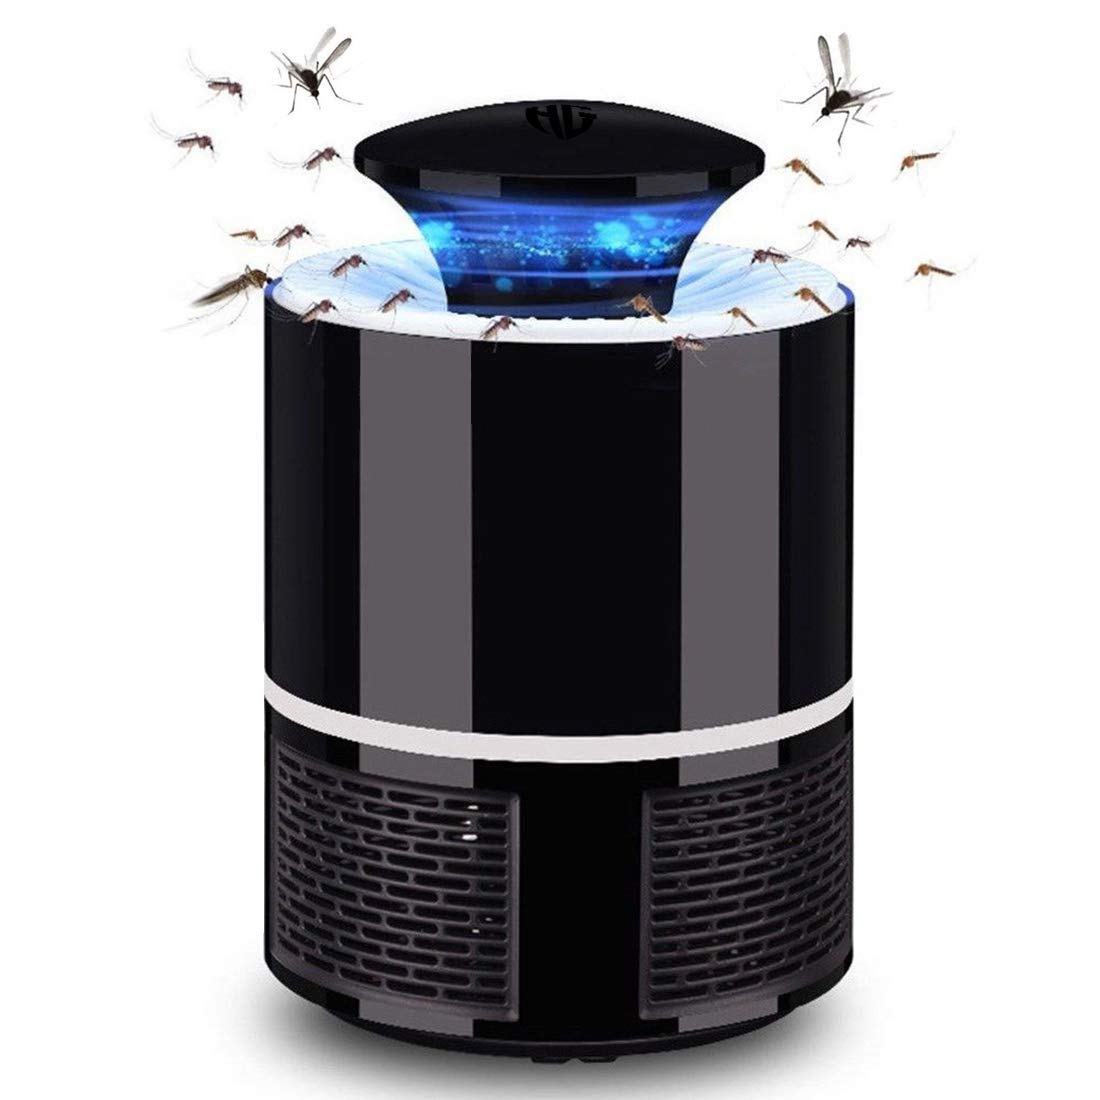 Huntingood Electric Mosquito Insect Killer/Bug Zapper with 360 Degrees LED Trap Lamp,Strong Built in Suction Fan,USB Power Supply,for Indoor (Black) by HUNTINGOOD